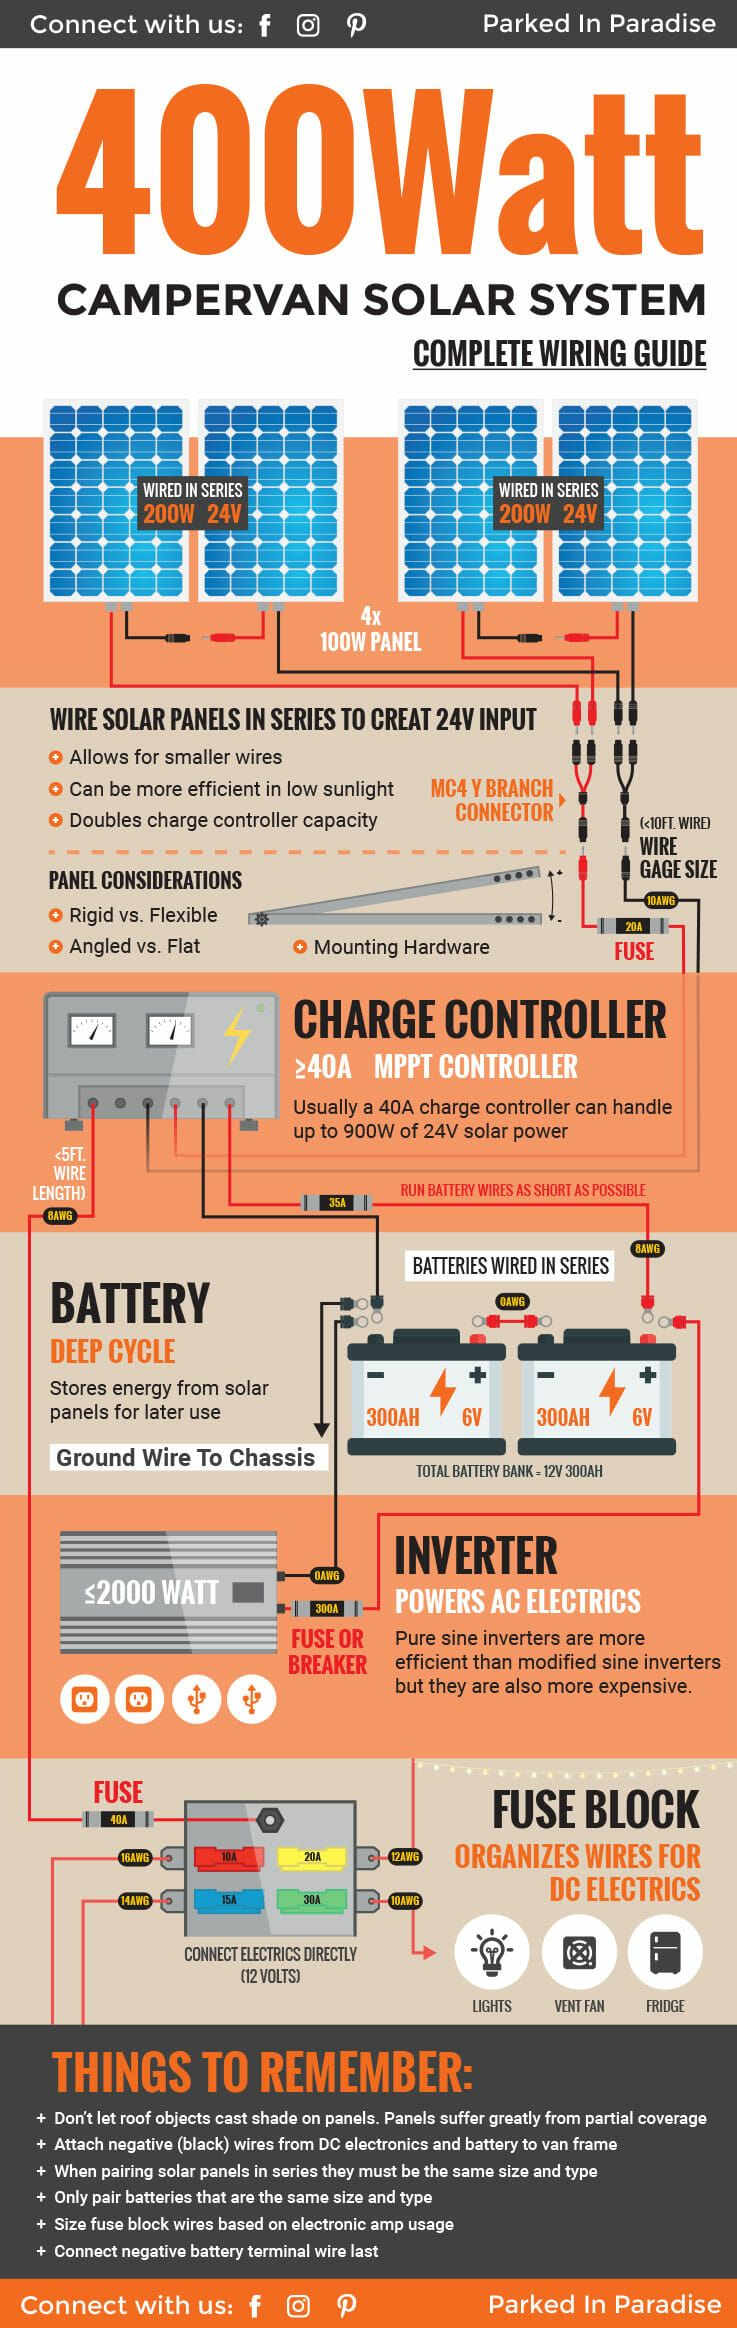 Solar Panel Calculator Diy Wiring Diagrams Camping Ideas Panels To Batteries Harness Diagram Guide For A 400 Watt System Perfect Kit Campervan Build I Want This On My Own Van Power Setup Of